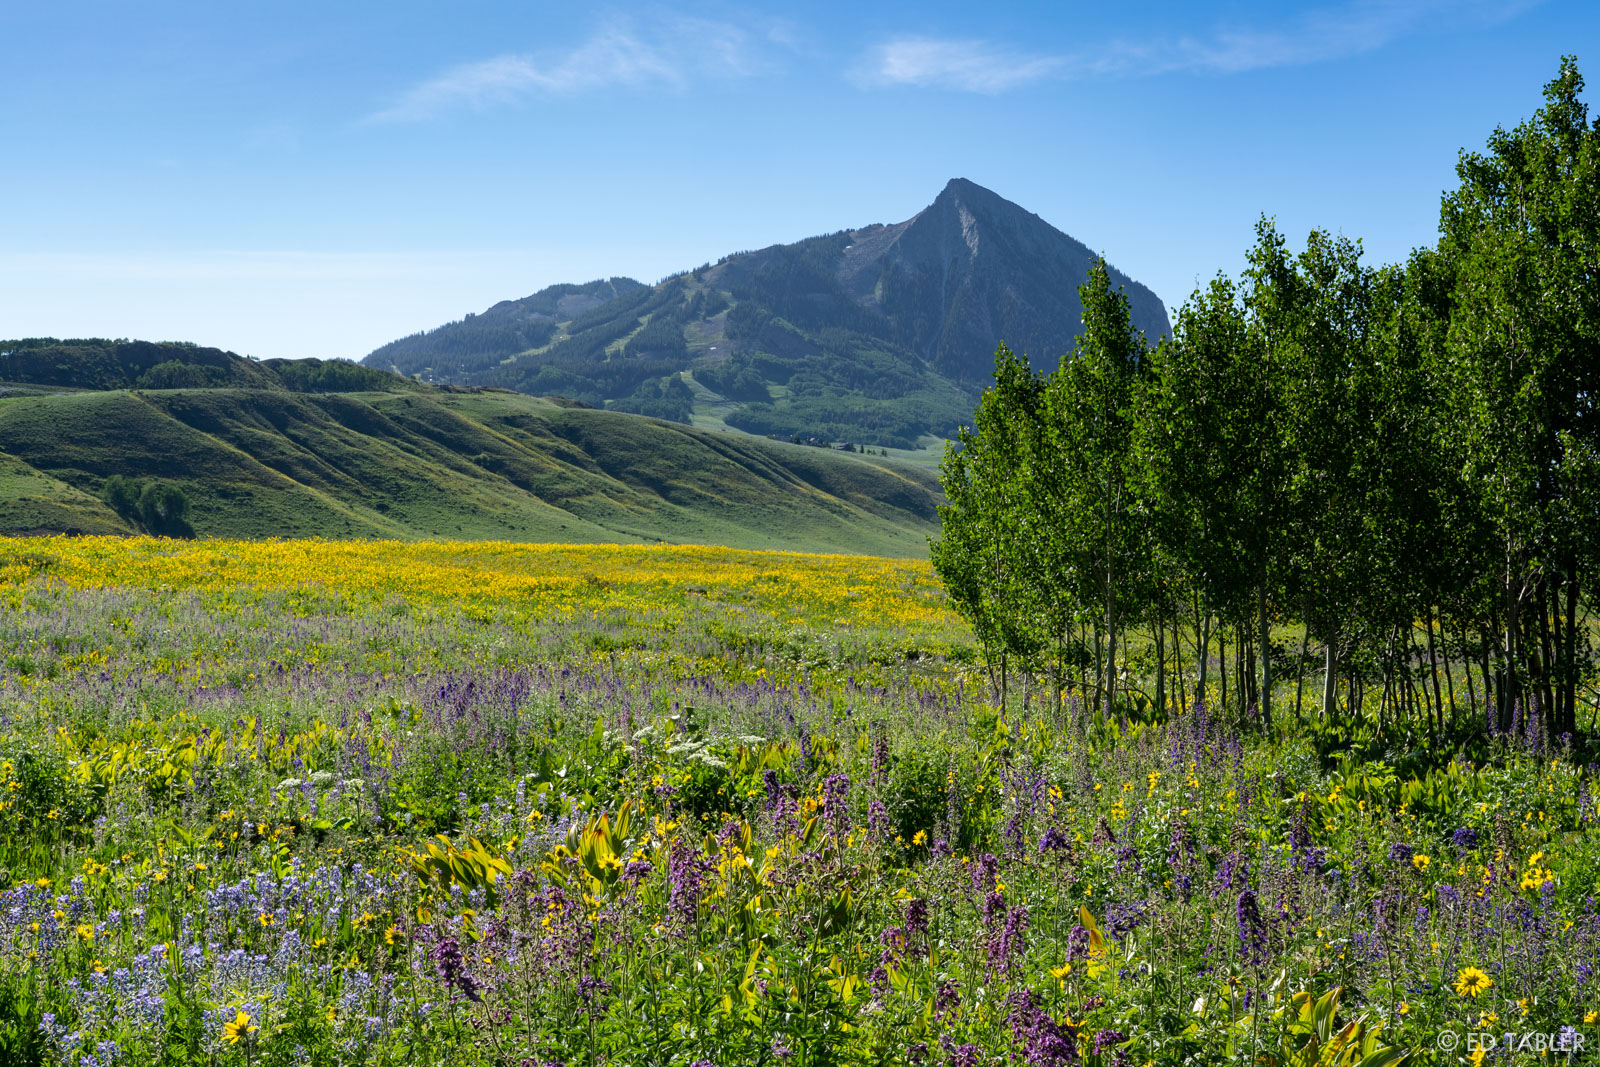 A sea of mule ear, larkspur and lupine, with Crested Butte in the background.